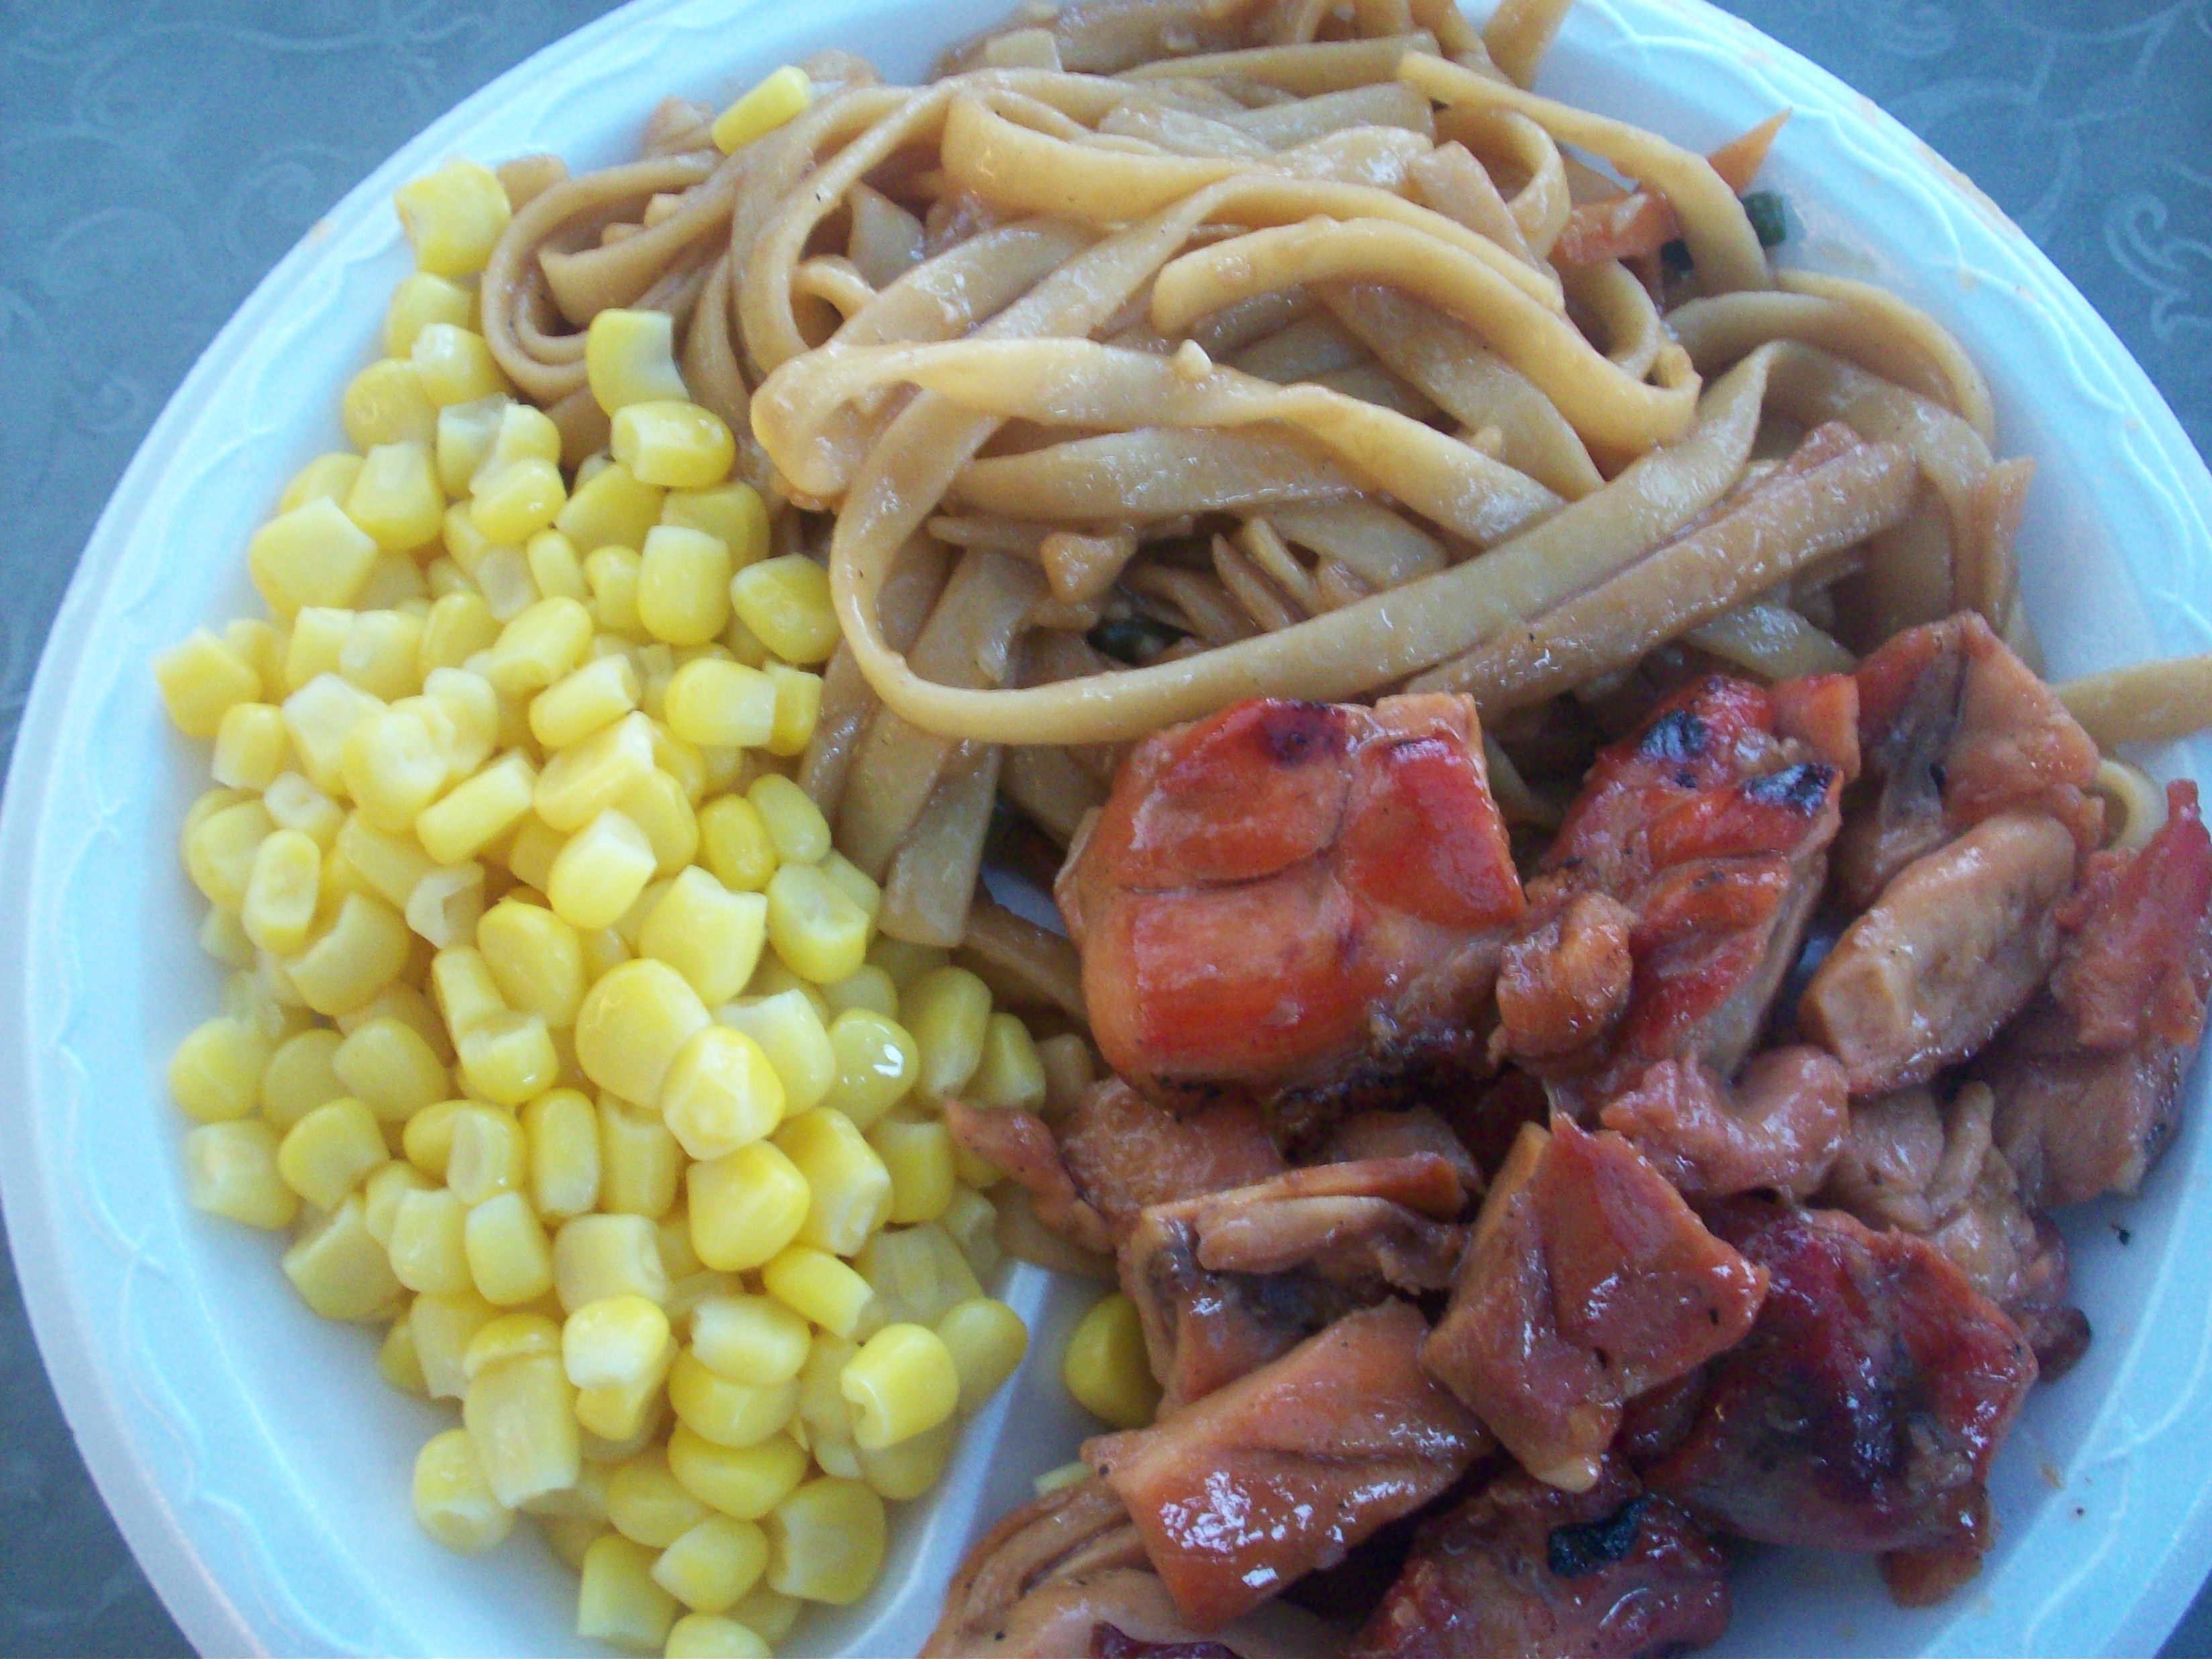 http://foodloader.net/cutie_2010-08-27_Bourbon_Chicken_with_Pasta.jpg